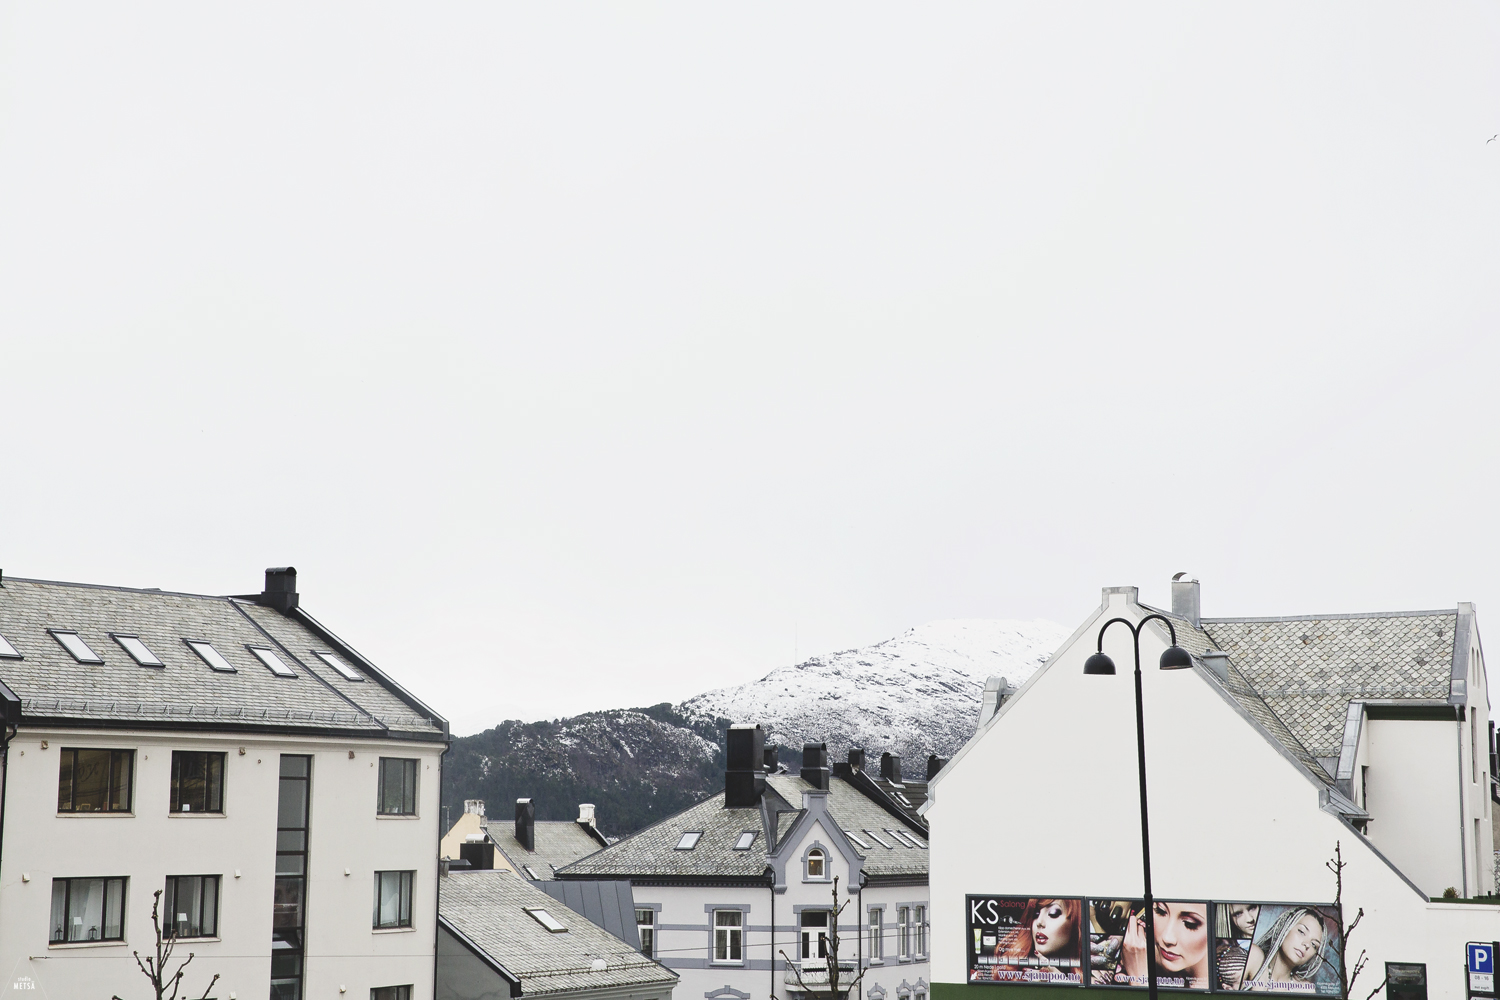 Street views with mountains in Ålesund Norway by Studio Metsä Photography